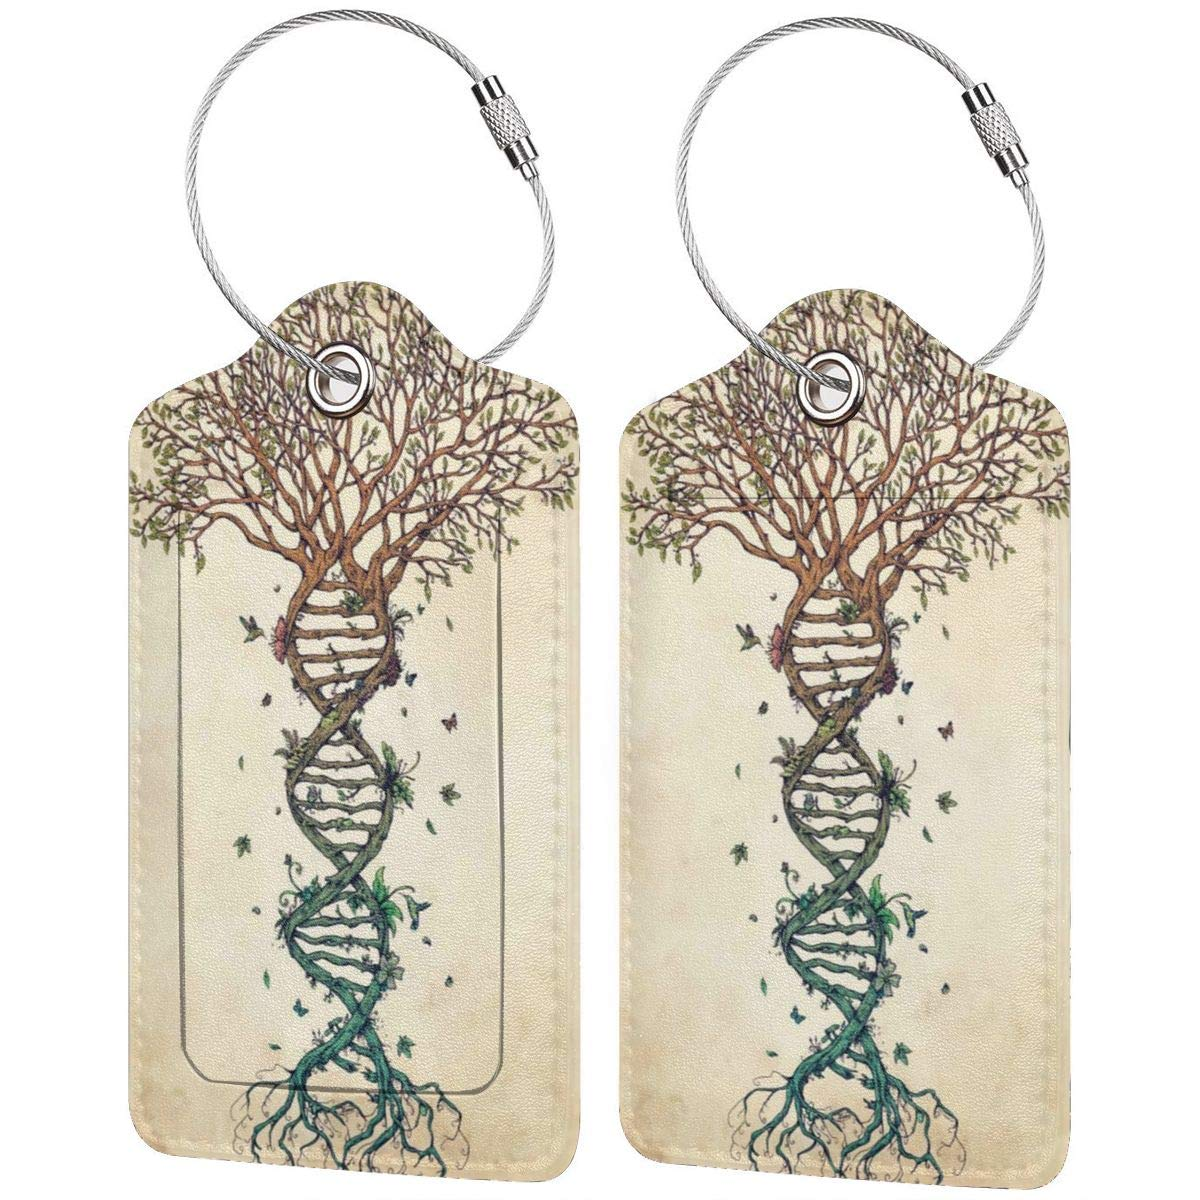 GoldK Tree of Life Leather Luggage Tags Baggage Bag Instrument Tag Travel Labels Accessories with Privacy Cover